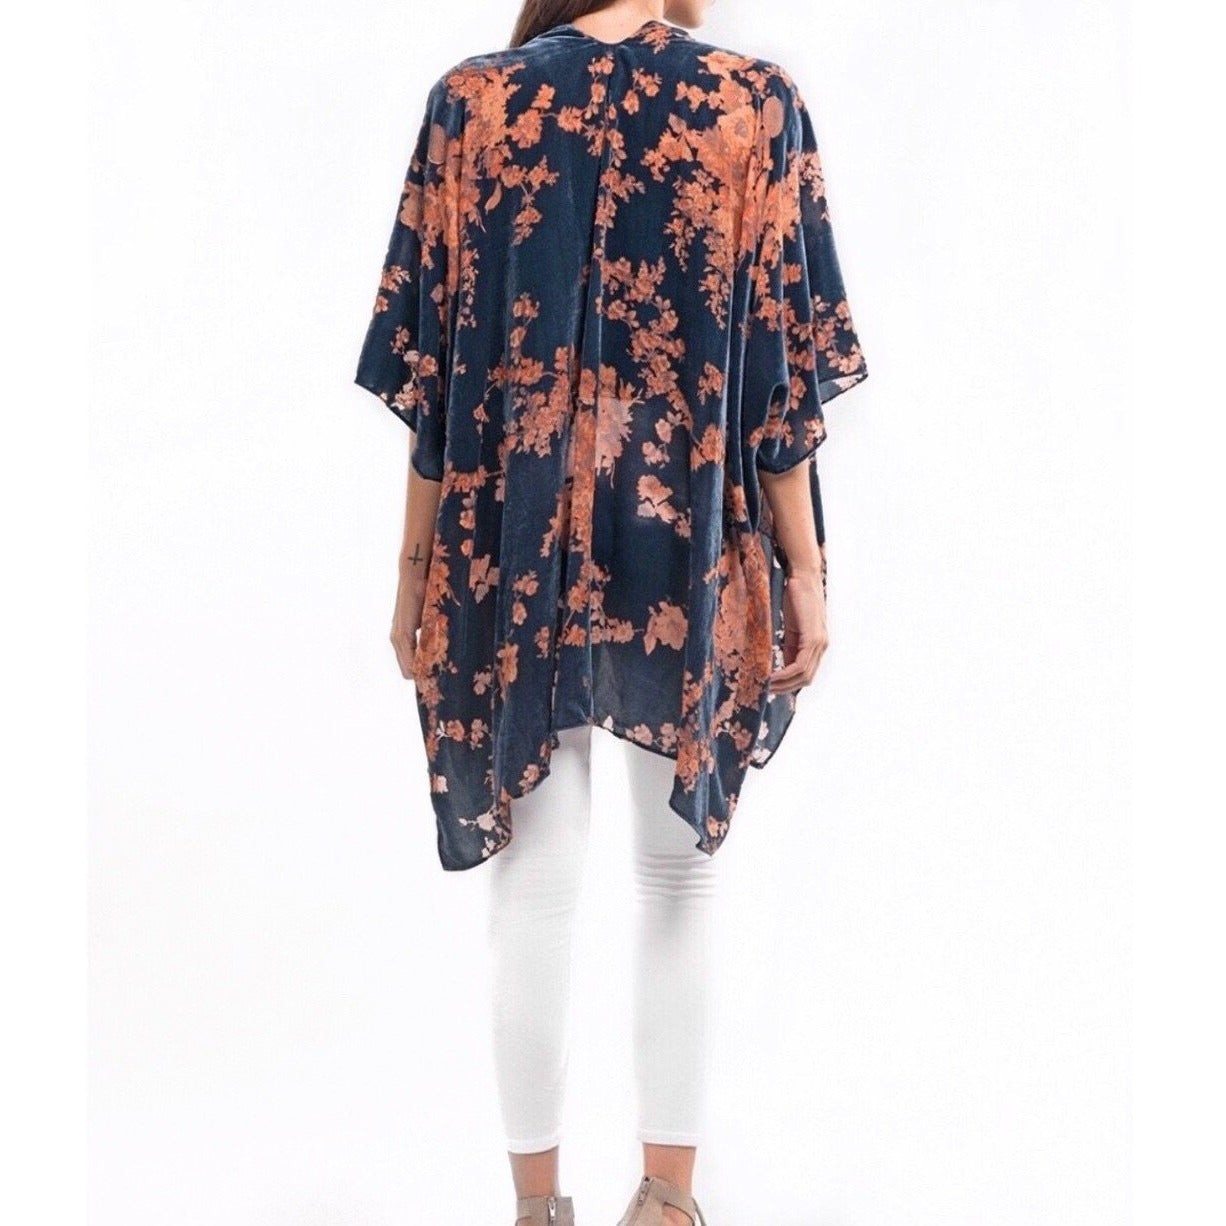 SALE! Bryce Velvet Burnout Split Front Kaftan by Lovestitch - Glamco Boutique